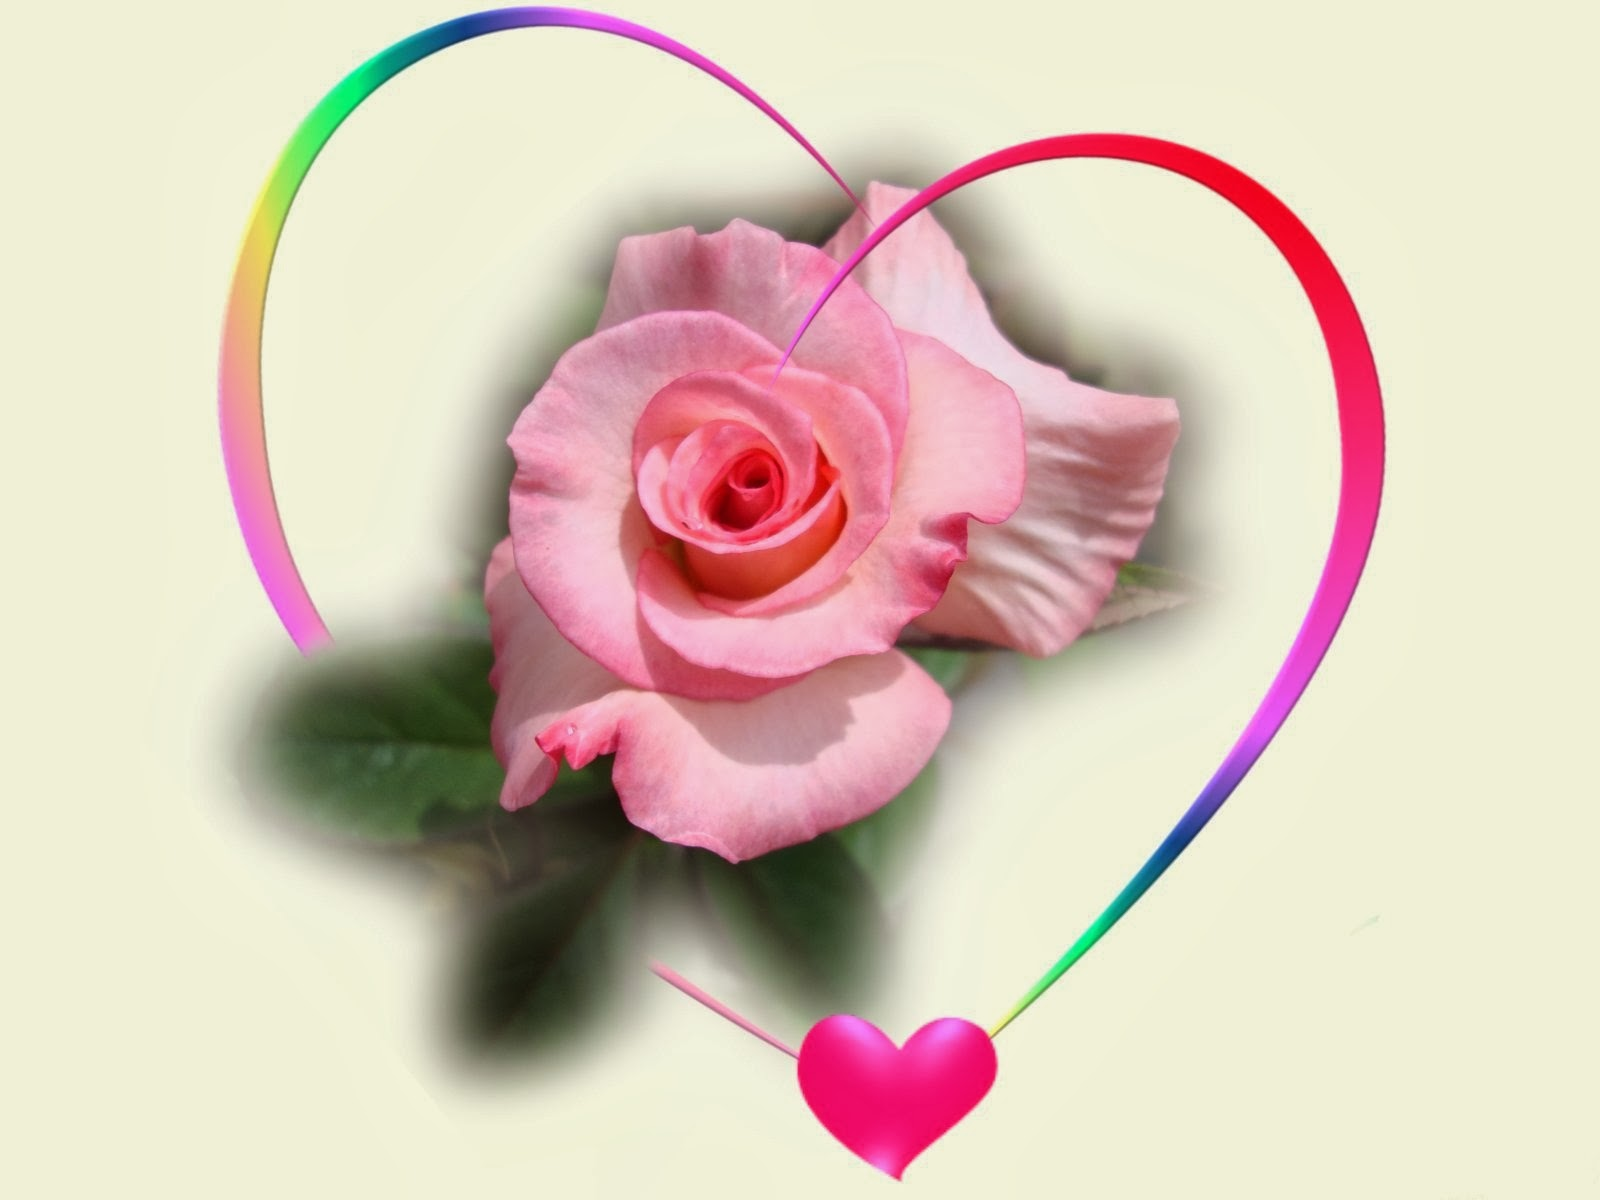 Pink Rose Hearts Roses Heart Isolated Love Wallpapers